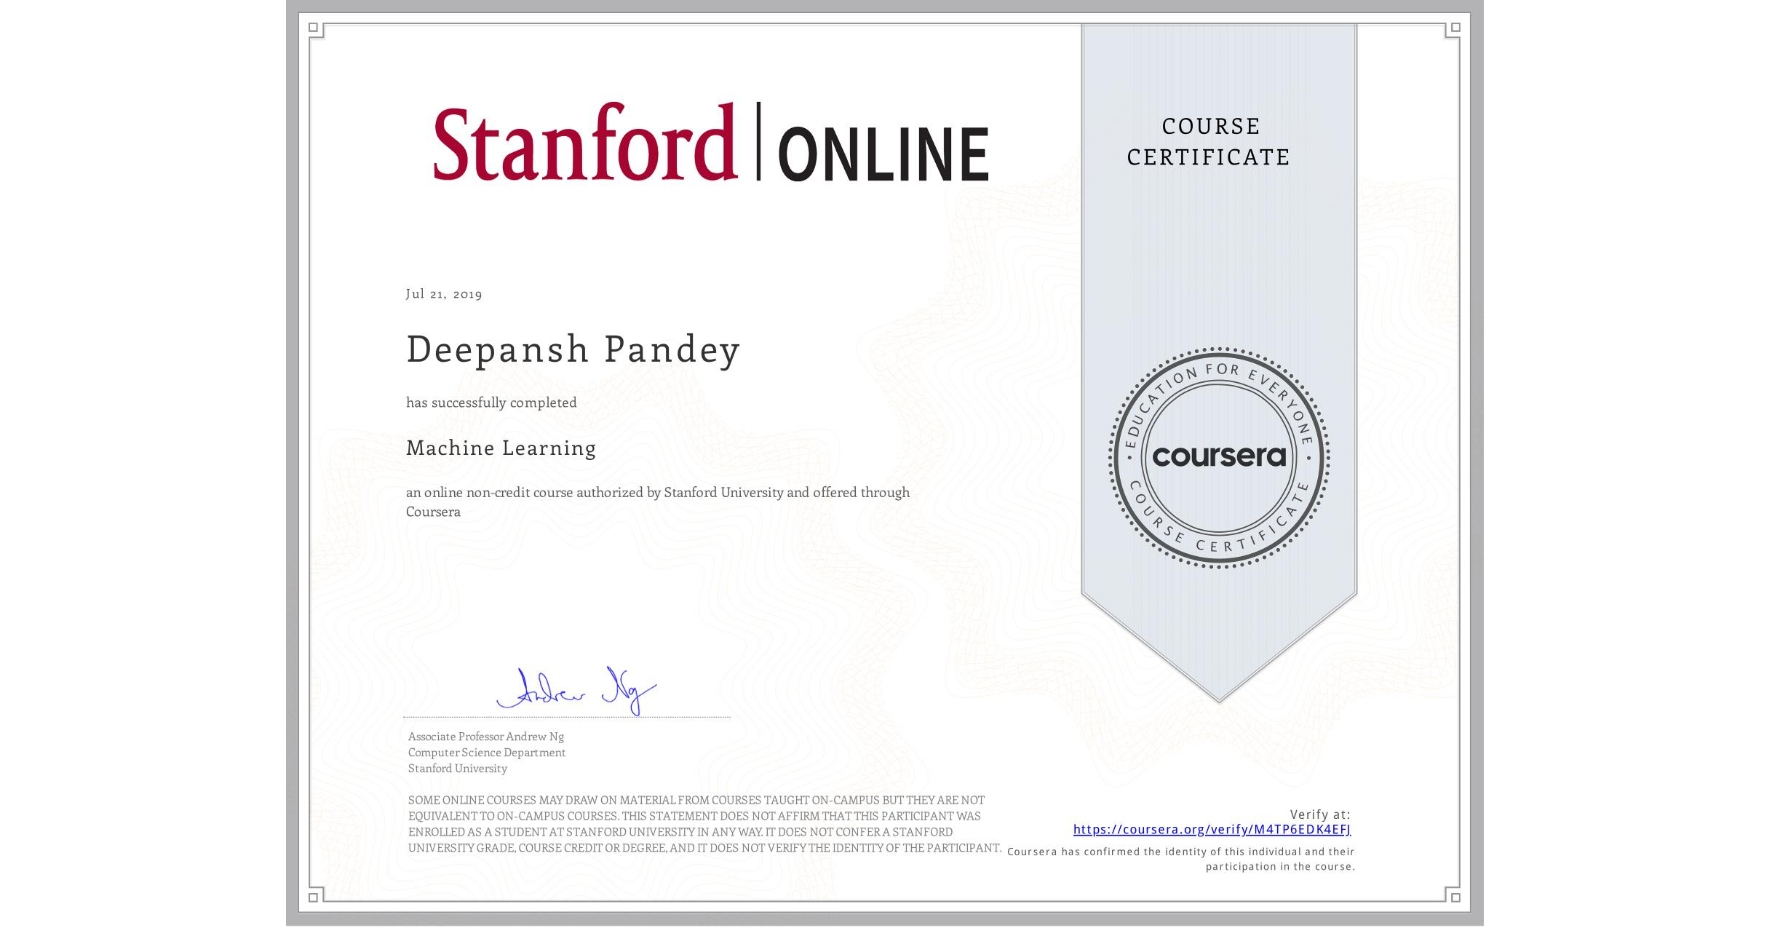 View certificate for Deepansh Pandey, Machine Learning, an online non-credit course authorized by Stanford University and offered through Coursera